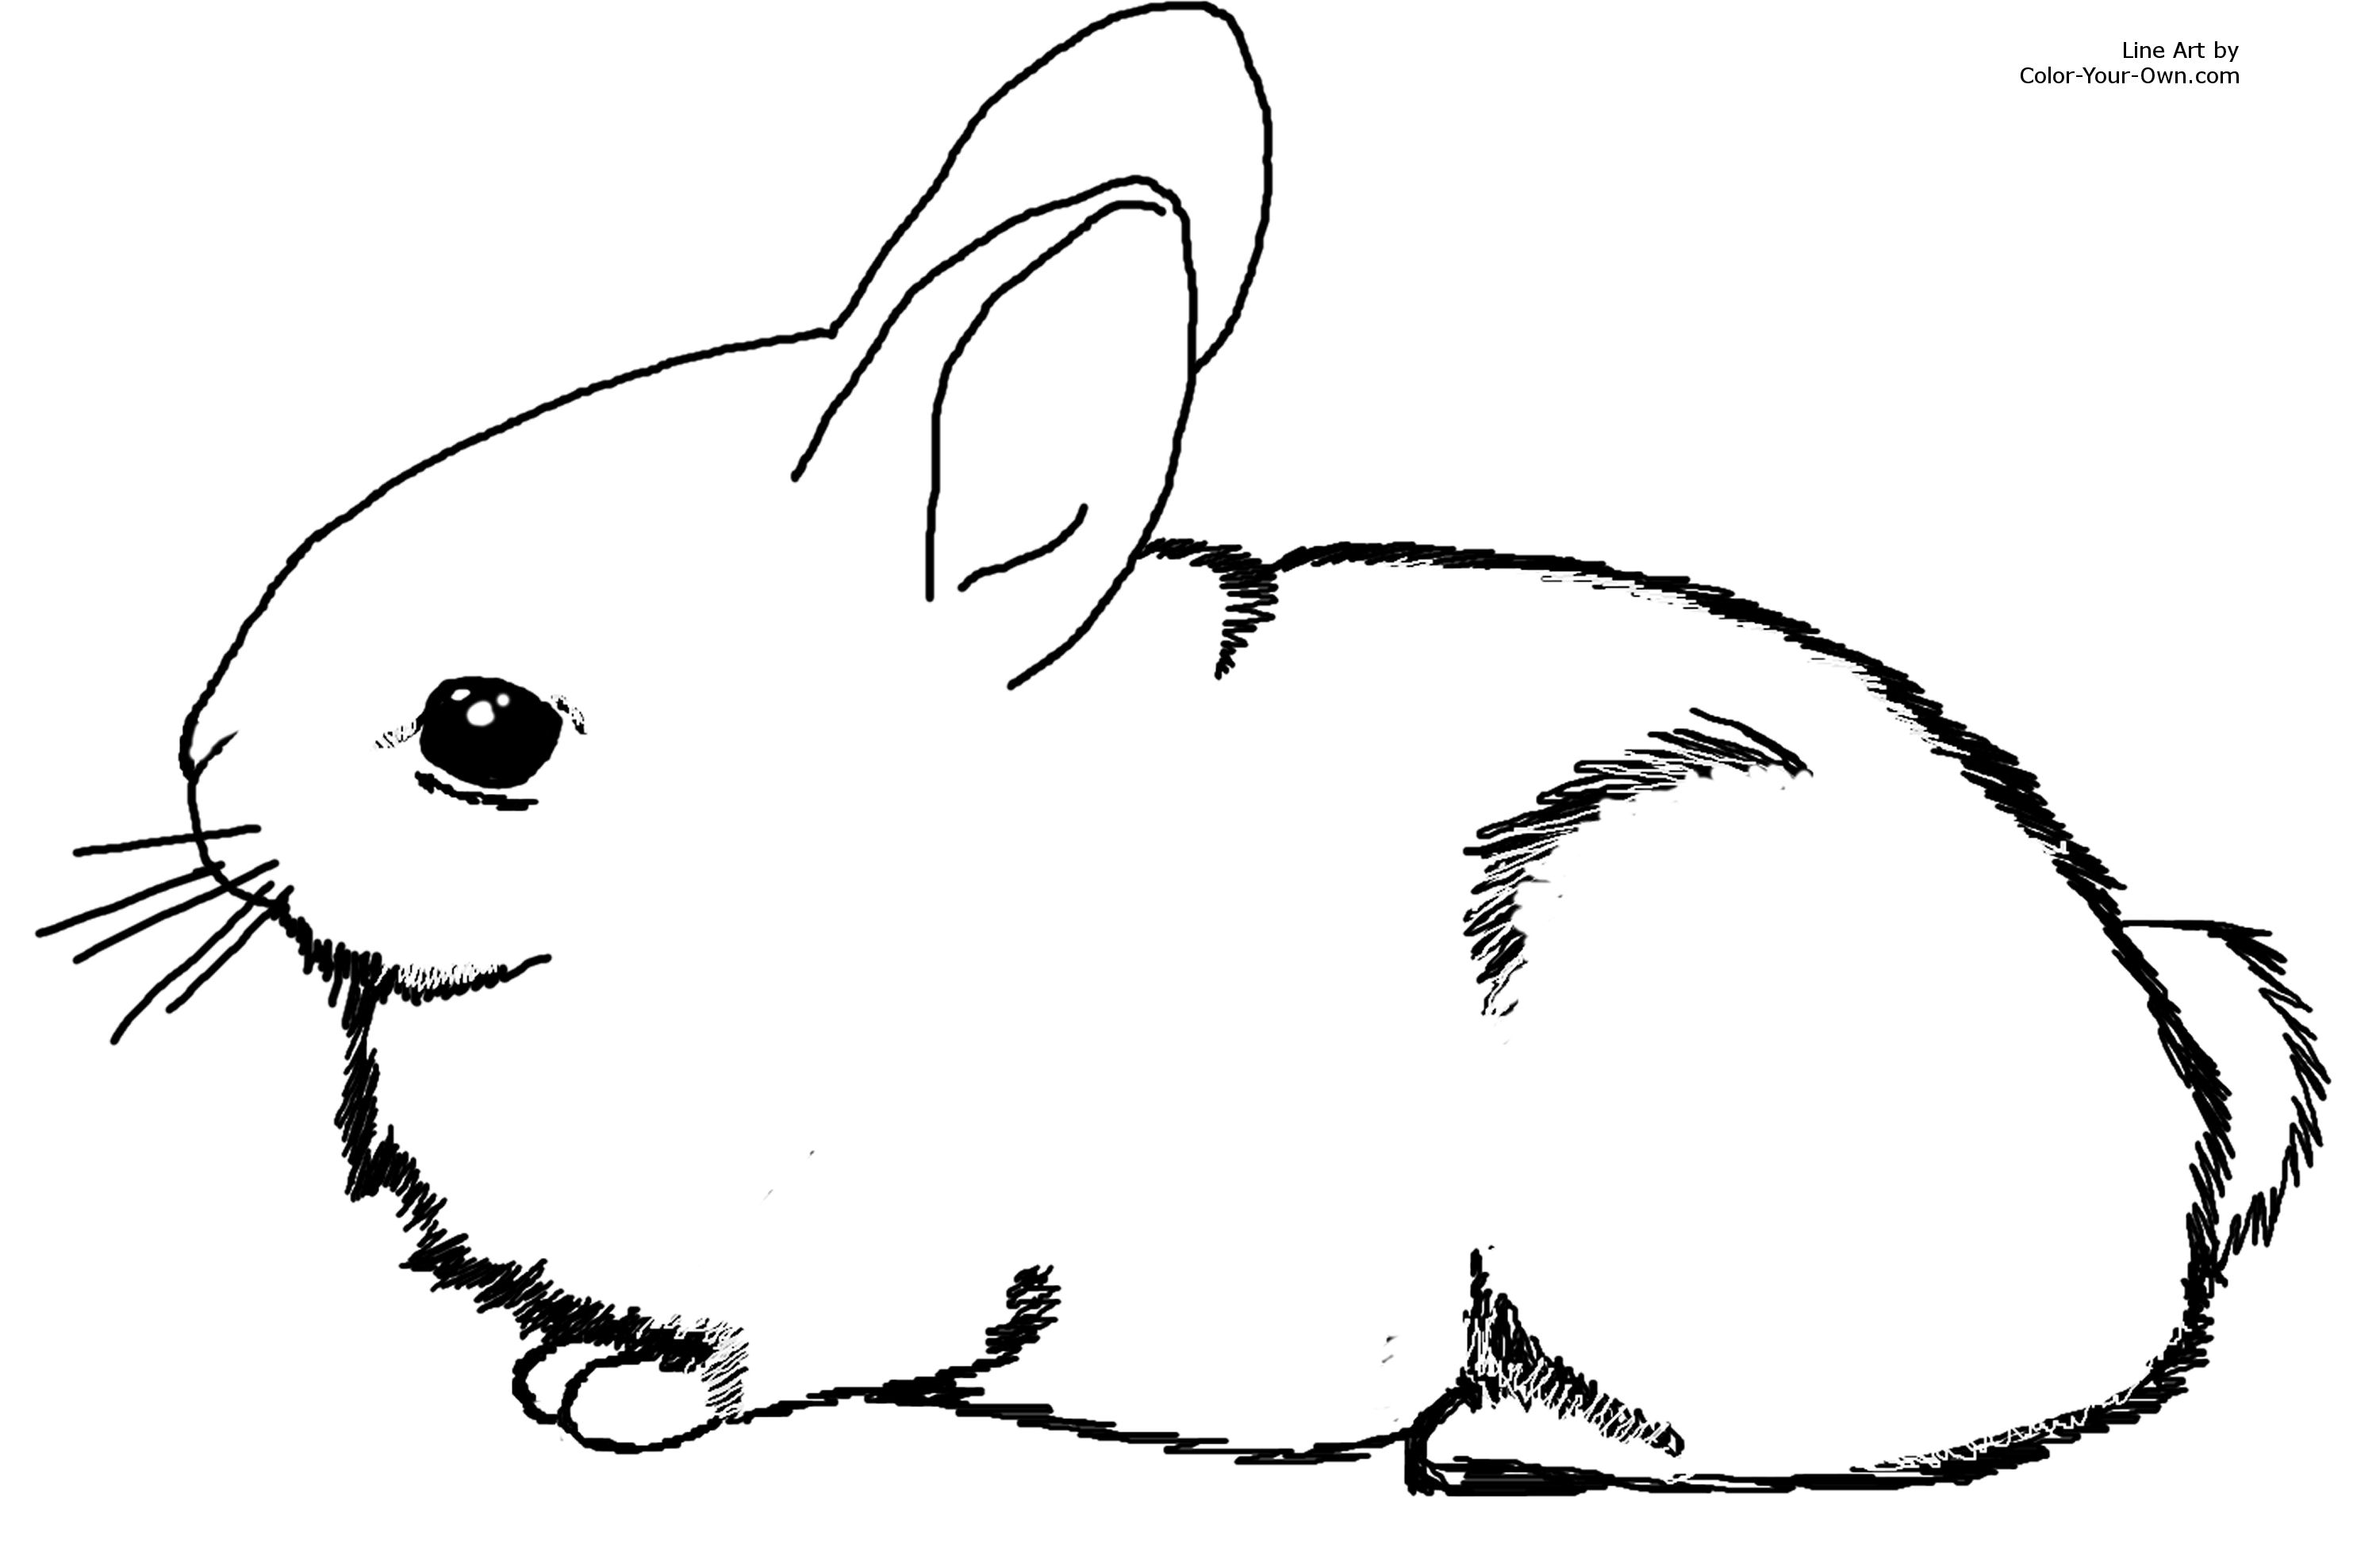 printable size click here return to the coloring pages index - Rabbit Coloring Page